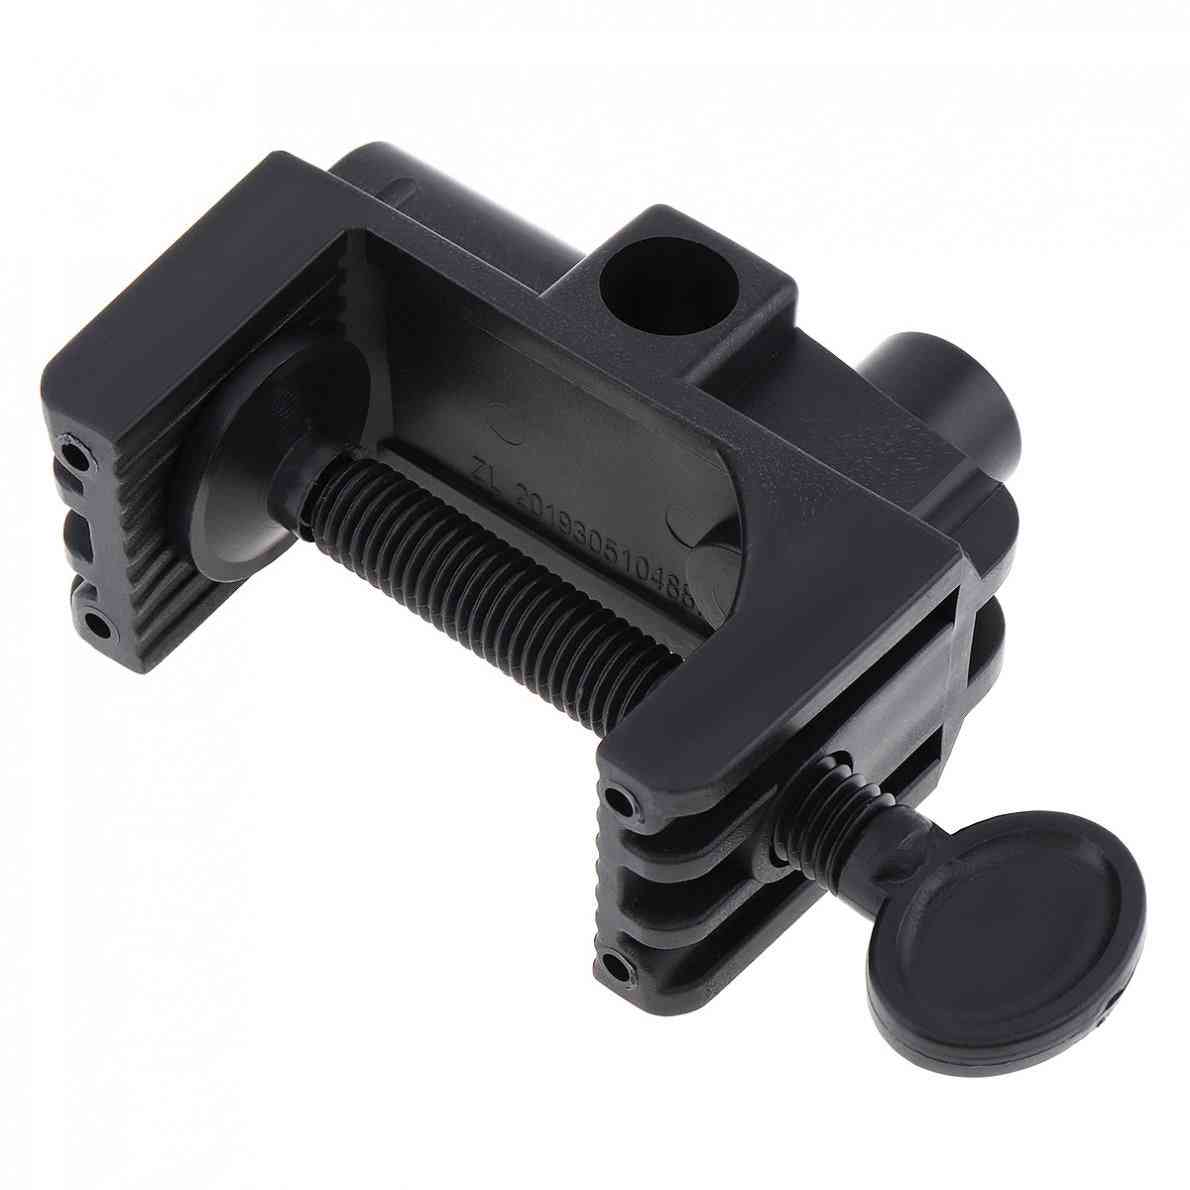 Fixed Clip Fittings, Screw Light Mounting Camera Holder